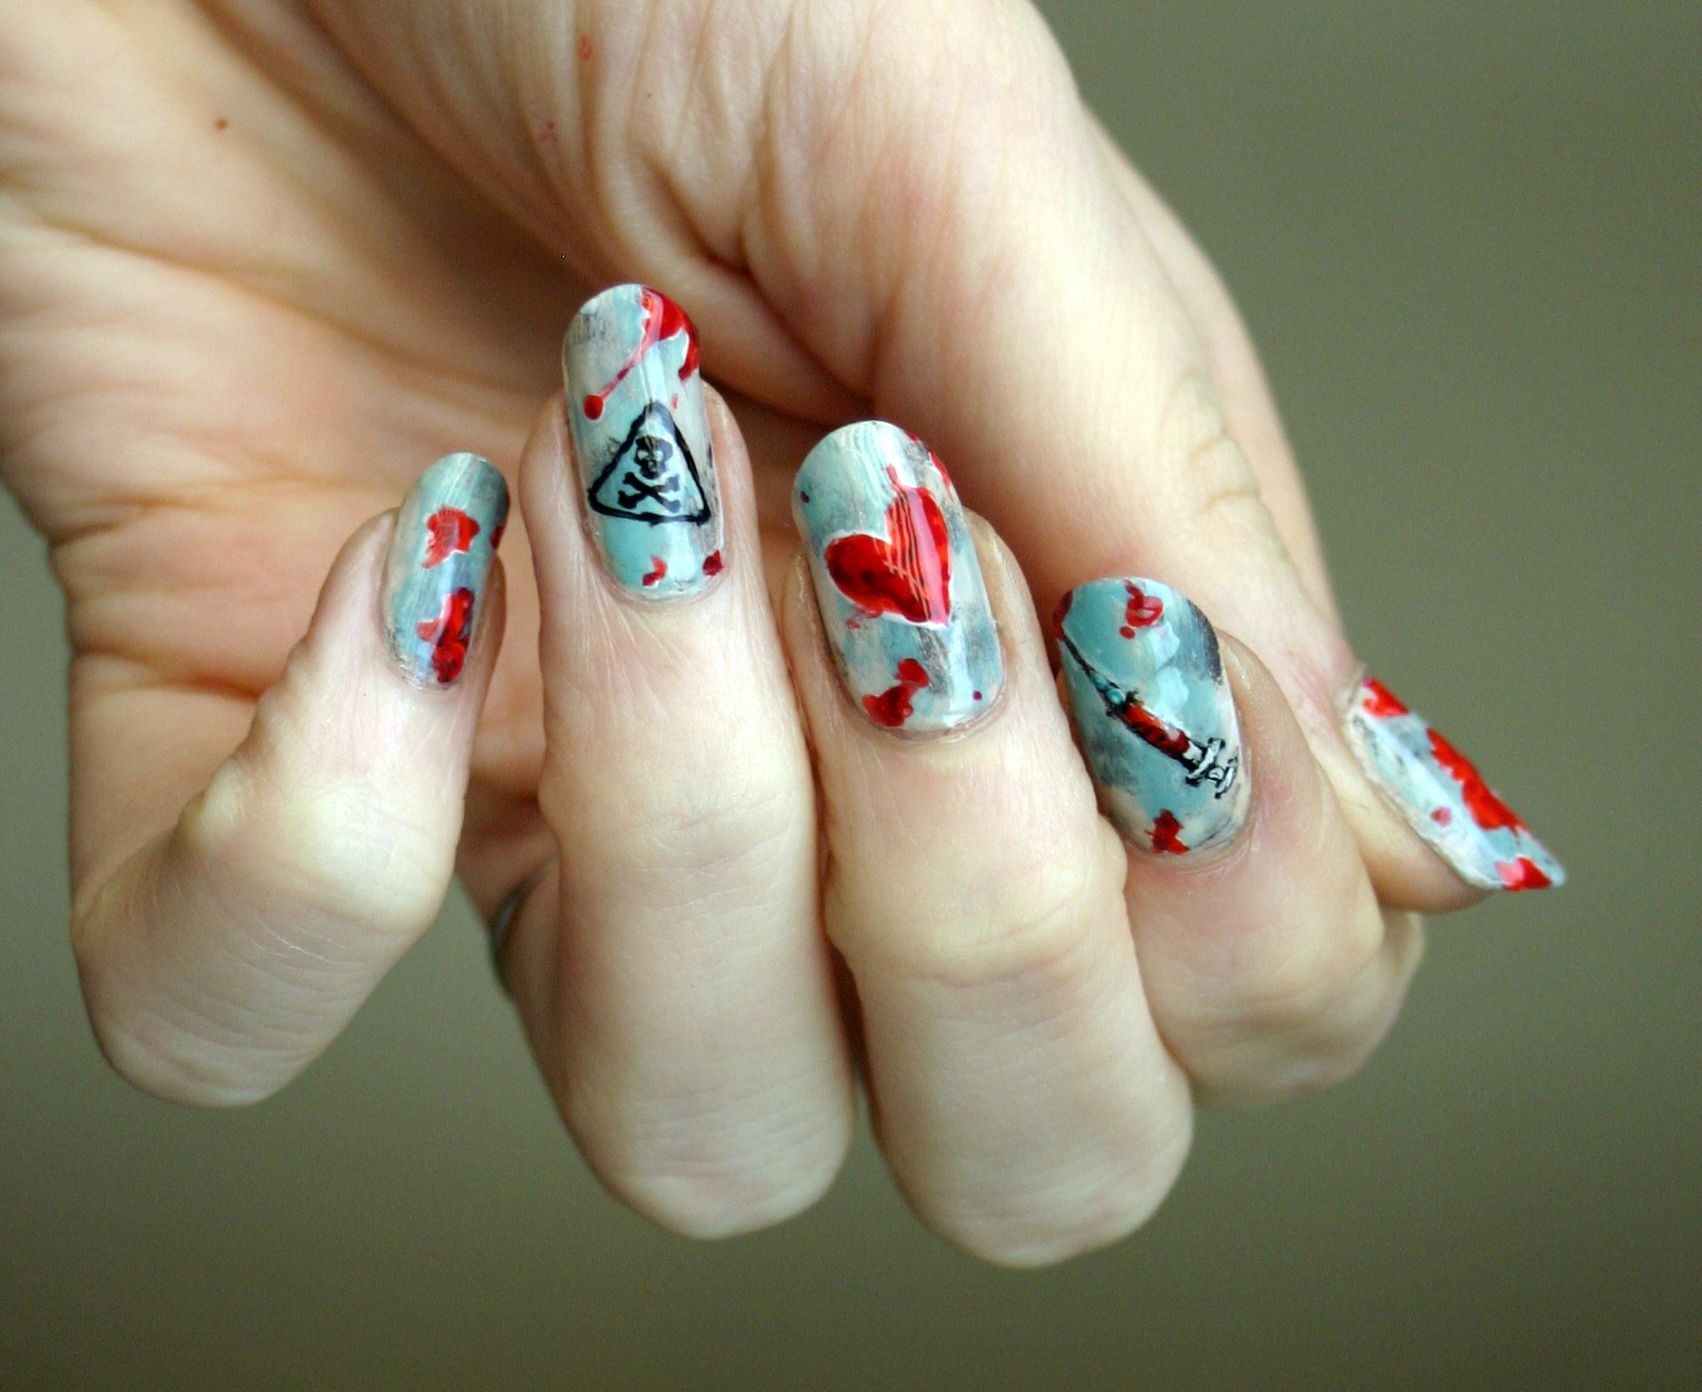 Love is the drug, or as close as I get to Valentine's Day nails.